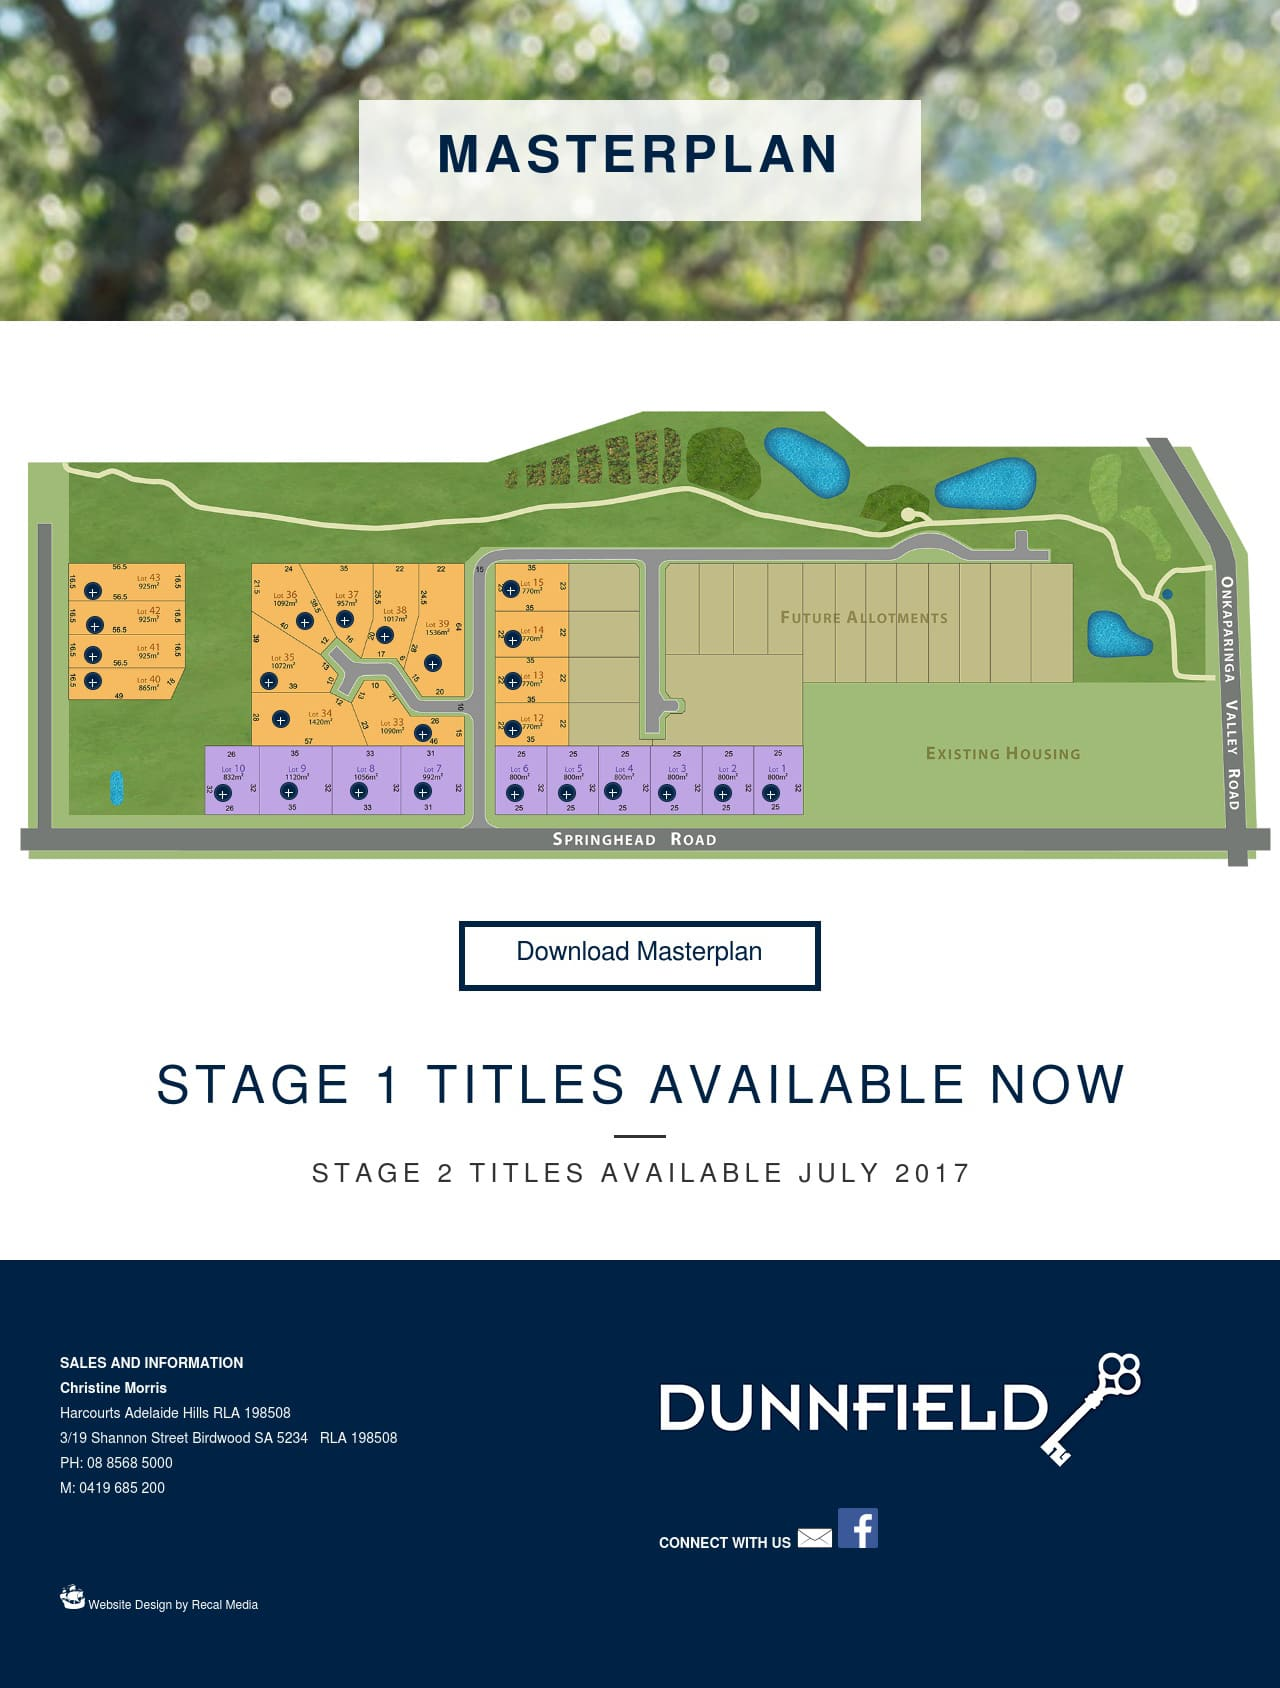 Dunnfield interactive masterplan page